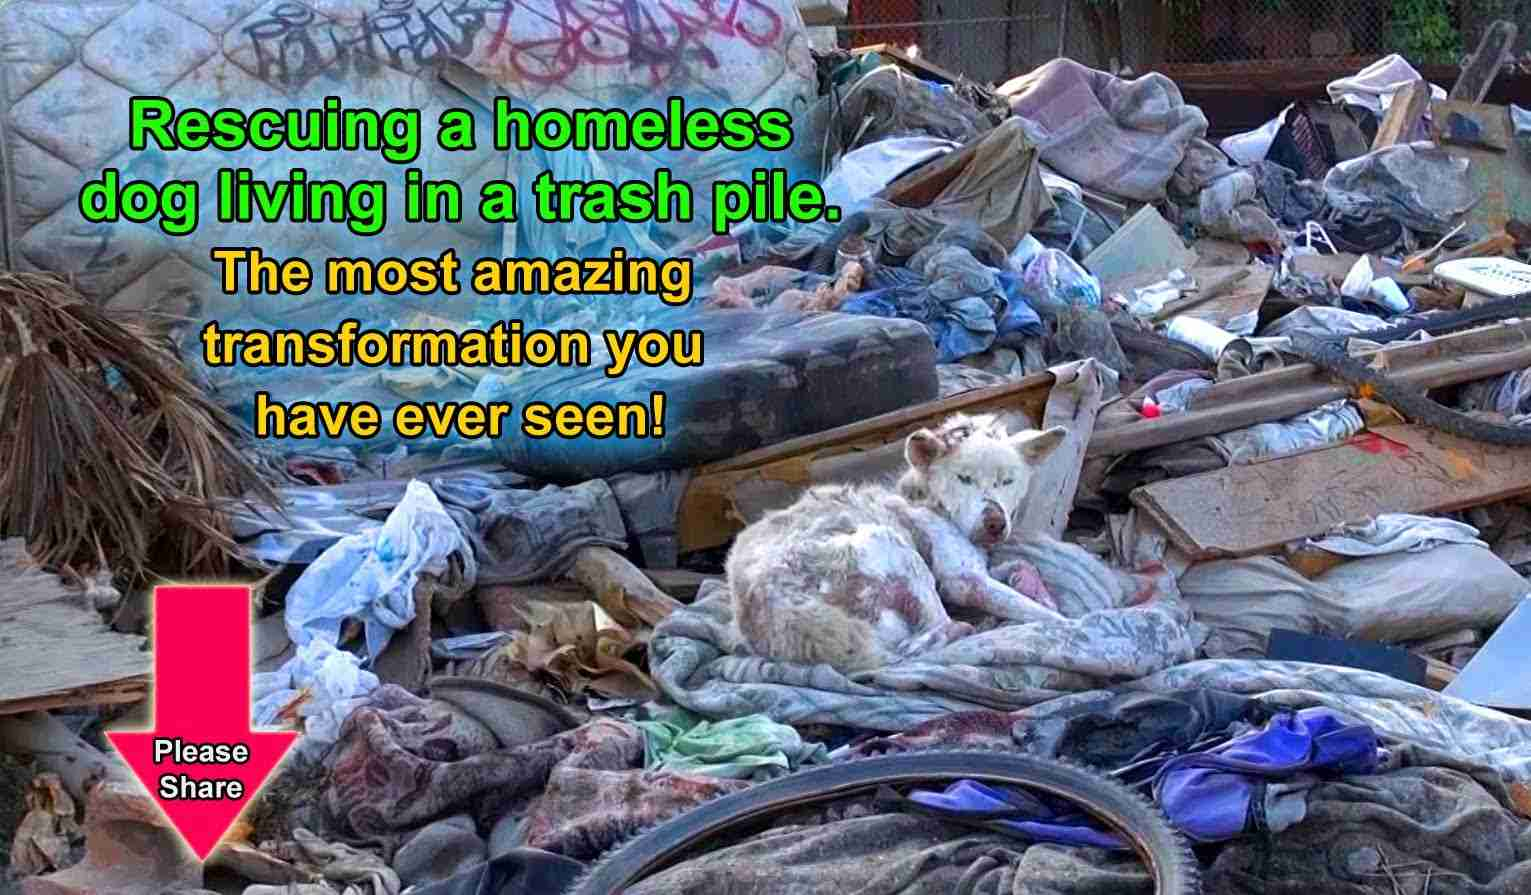 A homeless dog living in a trash pile gets rescued, and then does something amazing! Please share. - YouTube